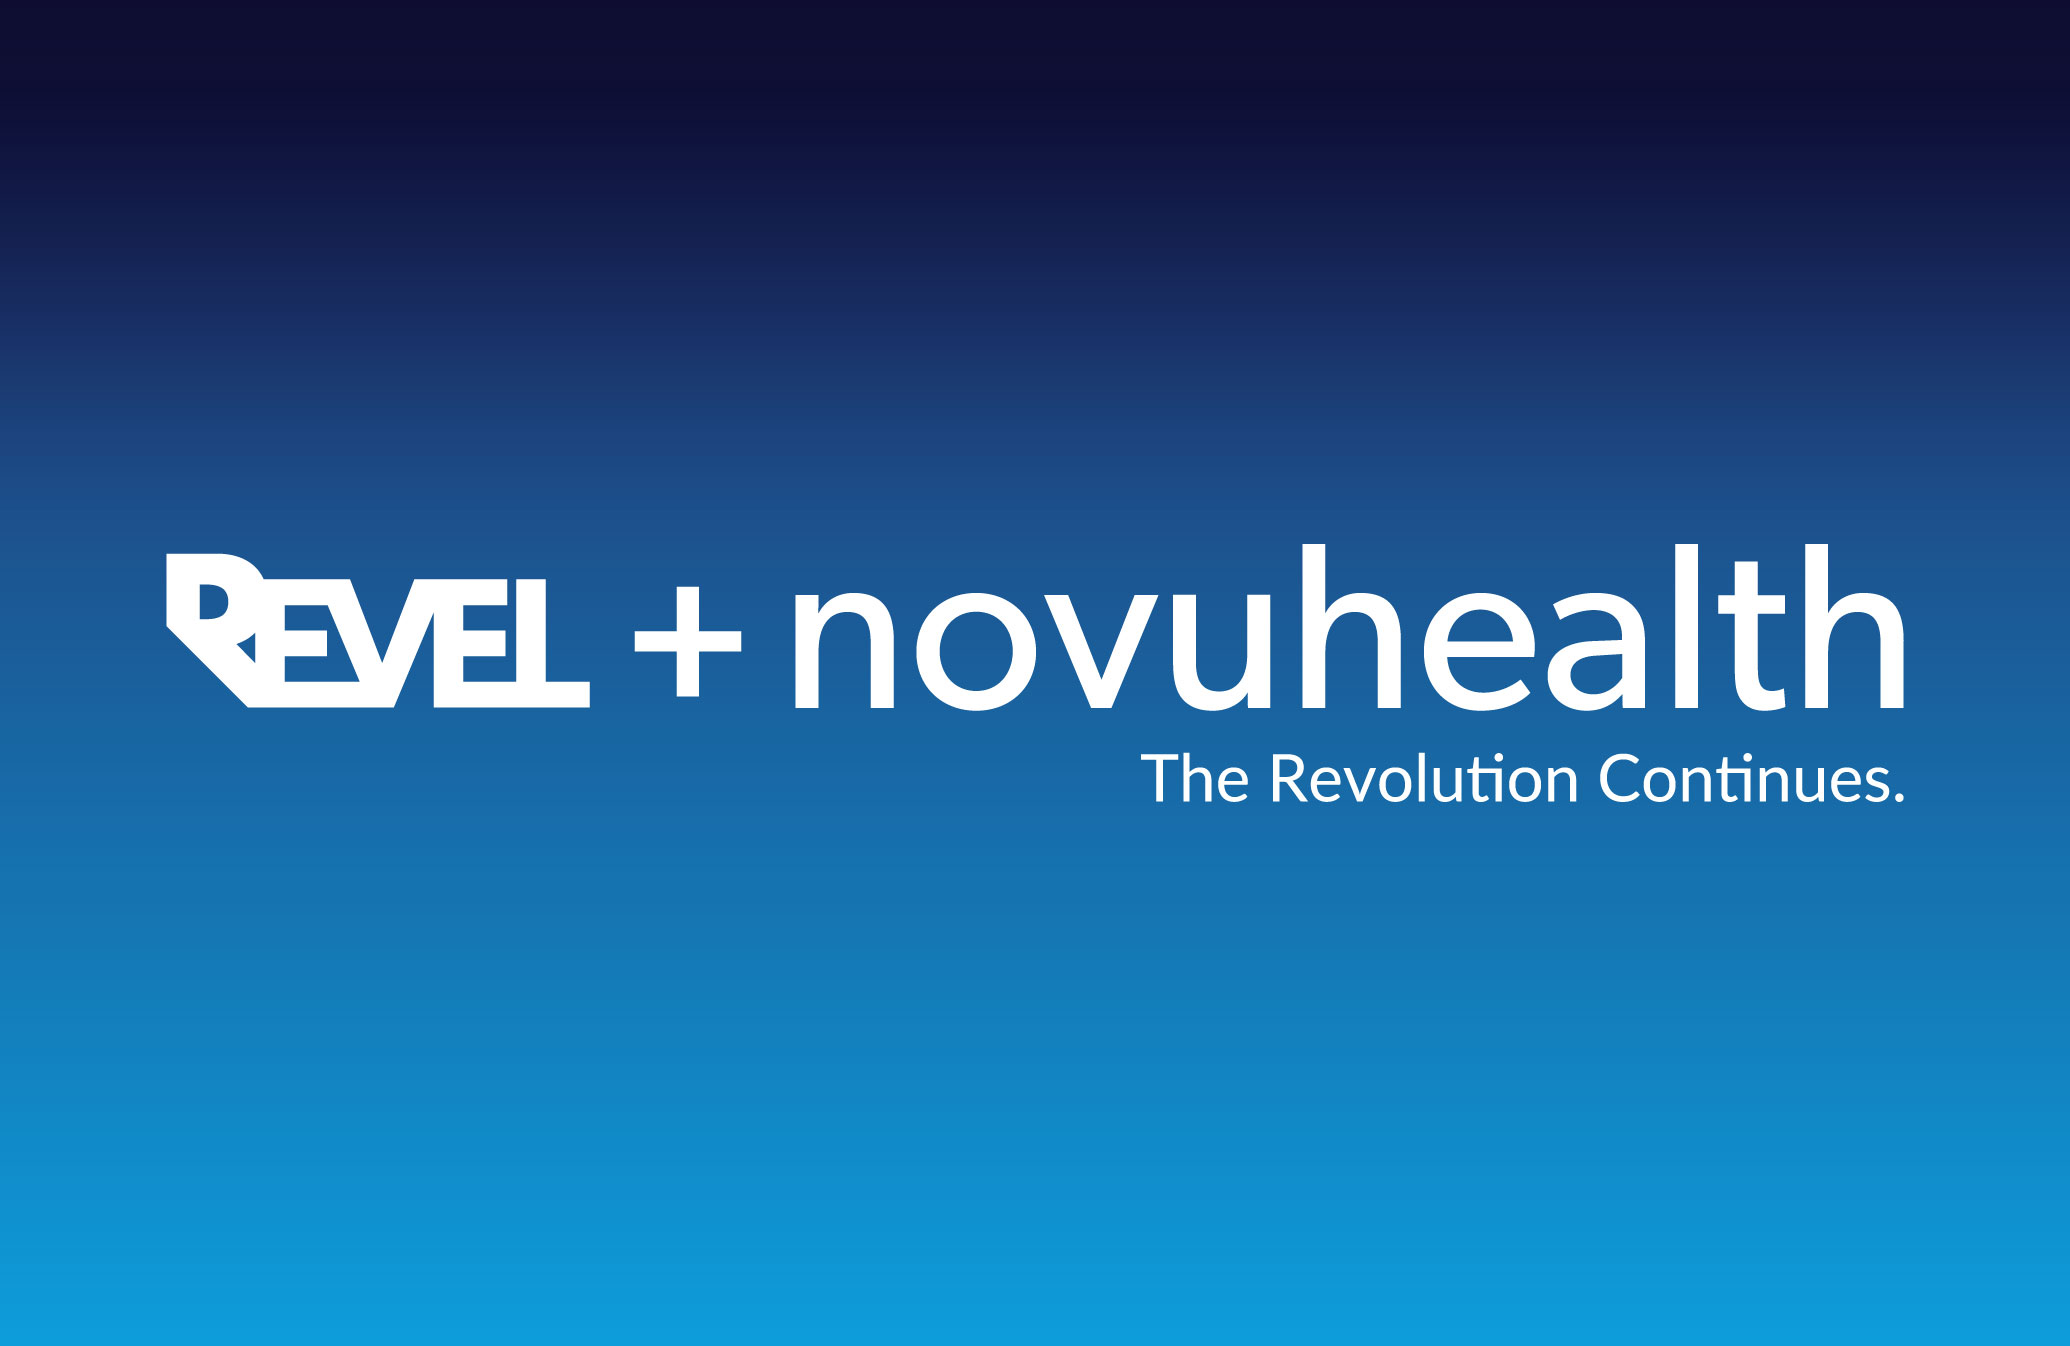 Revel + NovuHealth